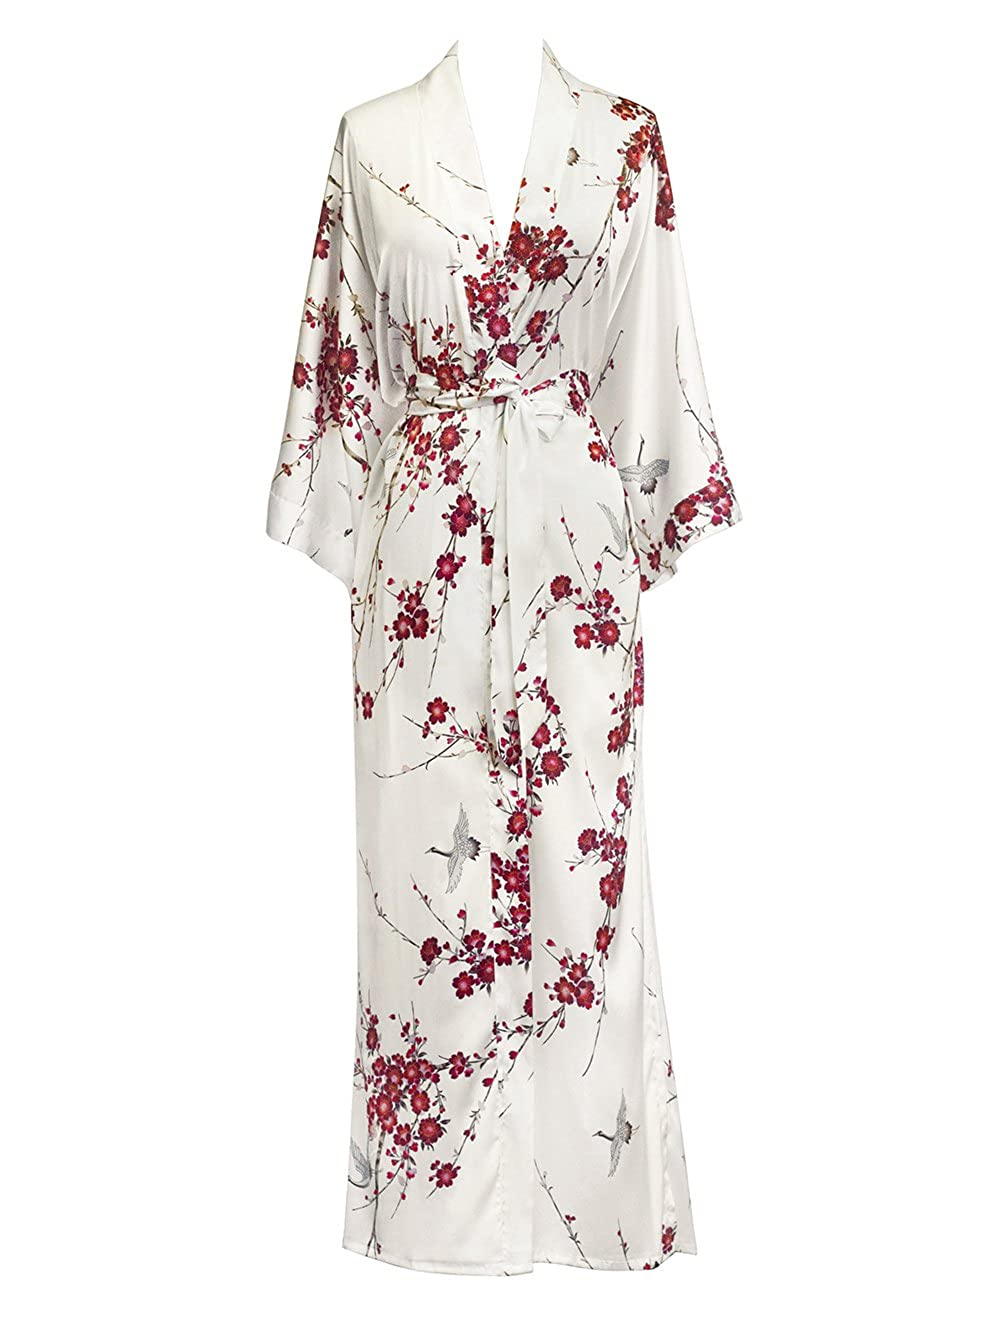 Cherry Blossom & Crane White Old Shanghai Women's Kimono Robe Long  Watercolor Floral